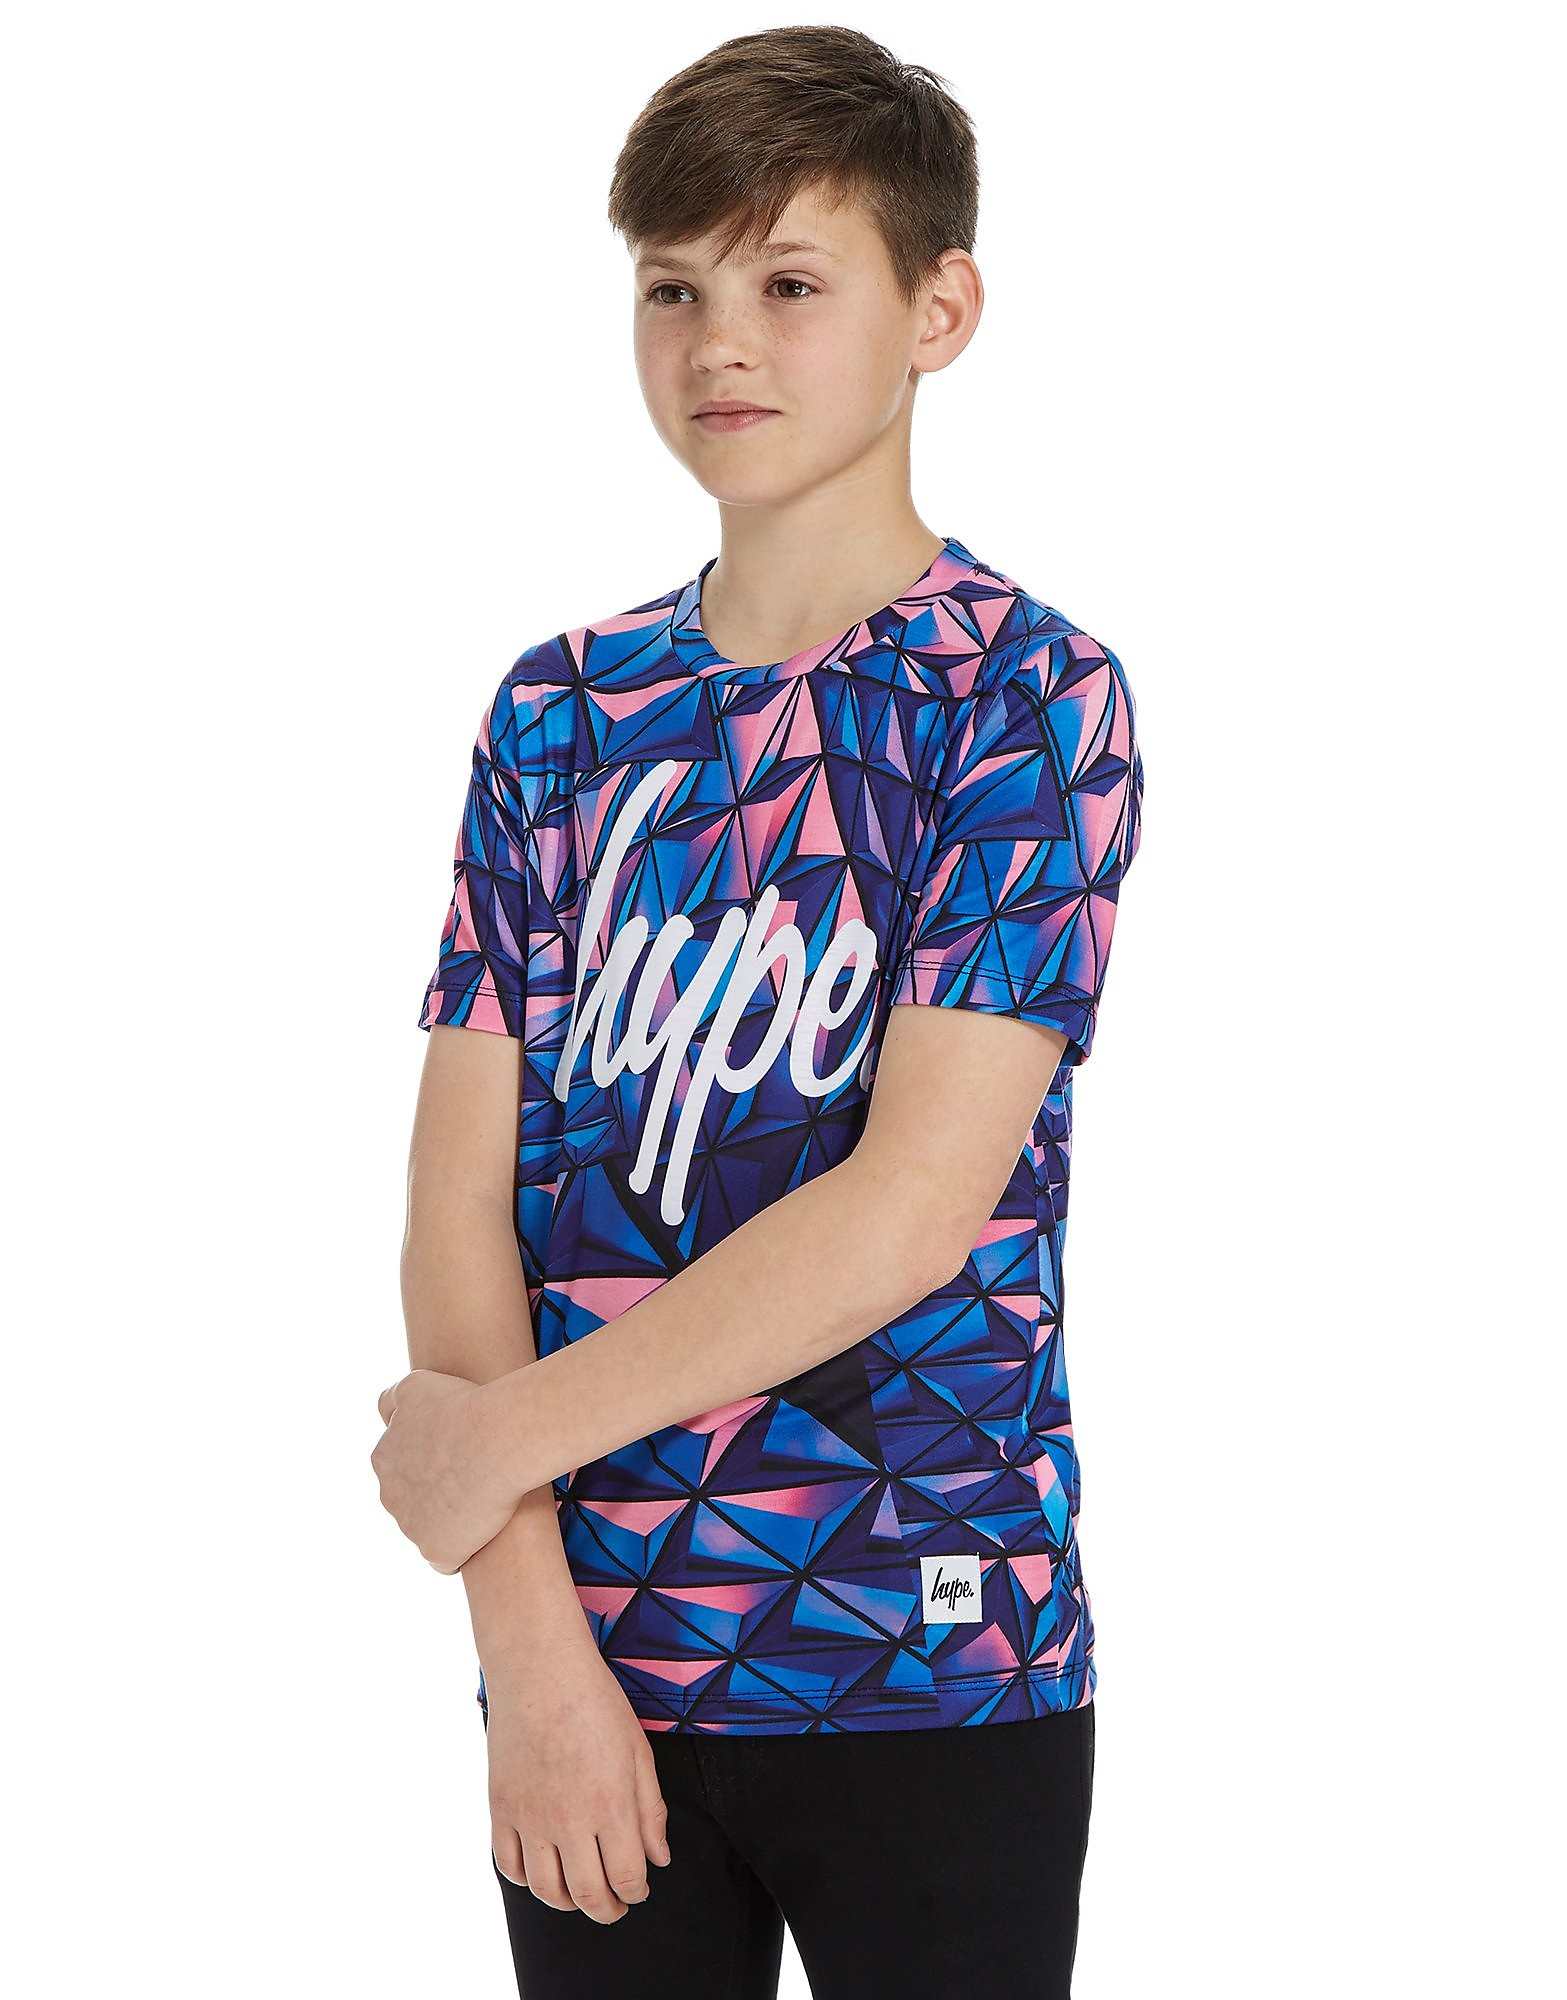 Hype Pyramid T-Shirt Junior